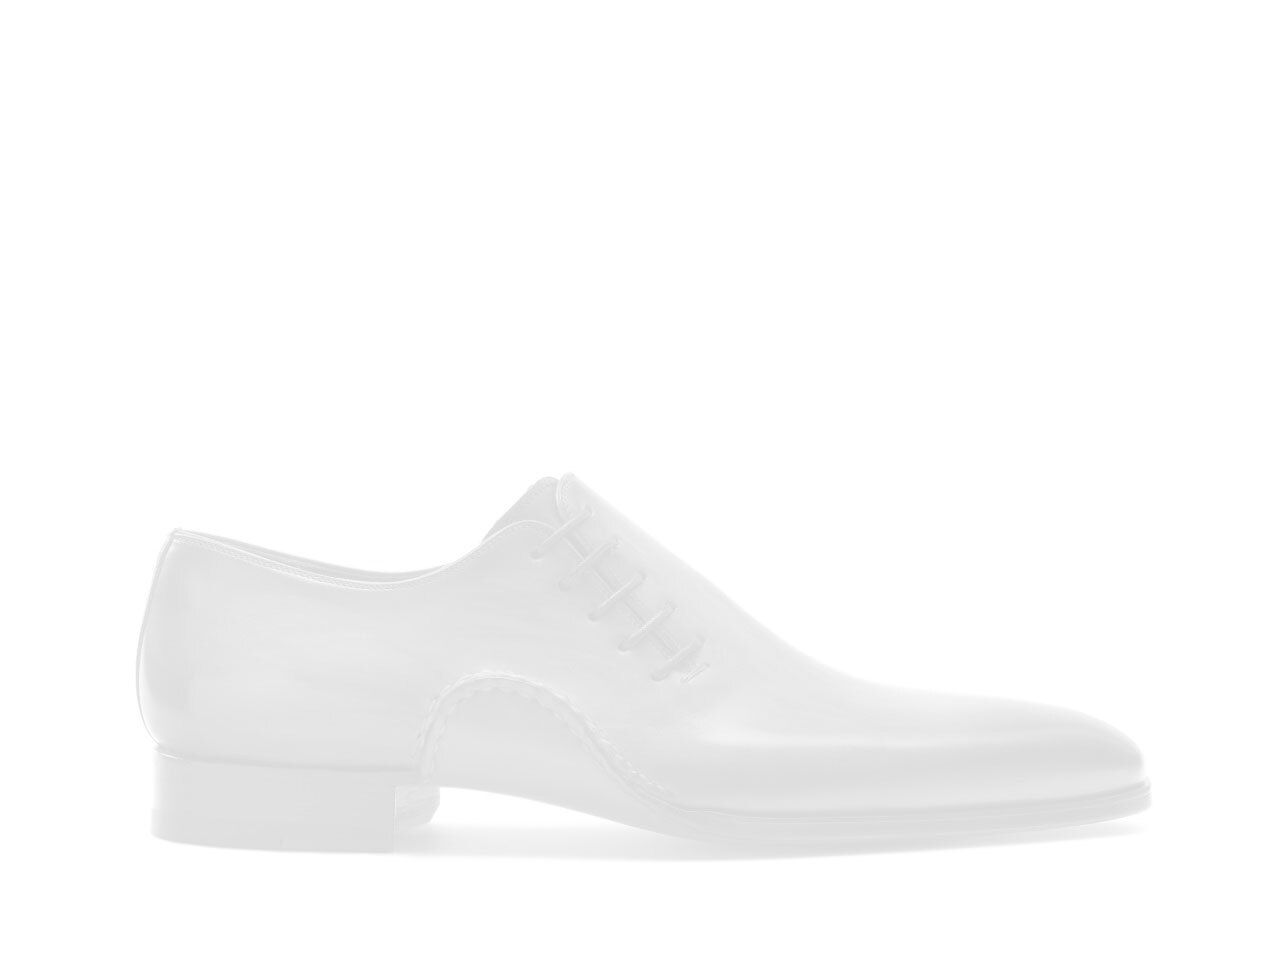 Side view of the Magnanni Ledger Curri Men's Oxford Shoes